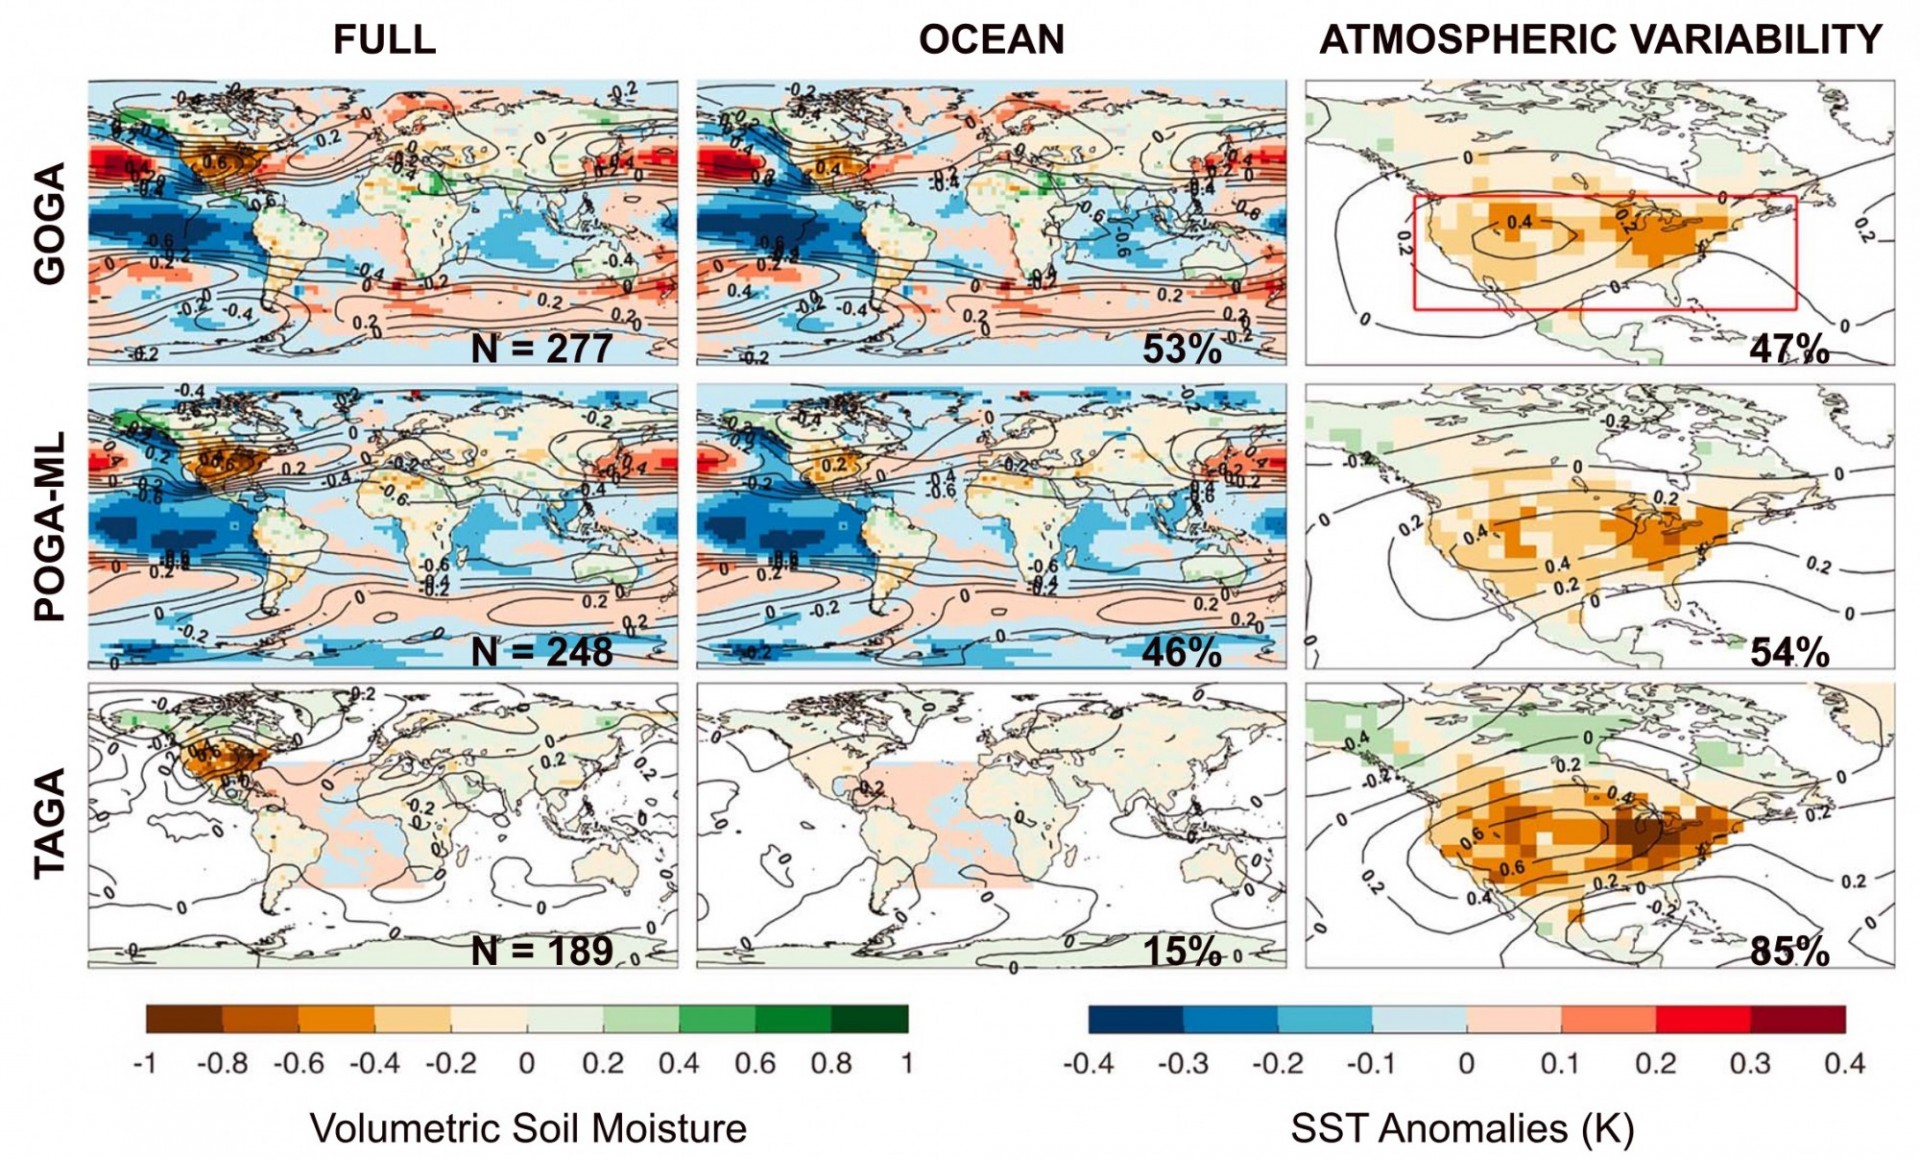 Composite of all pan‐CONUS droughts (for full, ocean and atmospheric contributions) and their associated annual SST and 500‐mbar anomalies from 1856 to 2007 across the 16‐member (top row) CCM3 GOGA, (middle row) CCM3 POGA‐ML, and (bottom row) CCM3 TAGA ensembles.